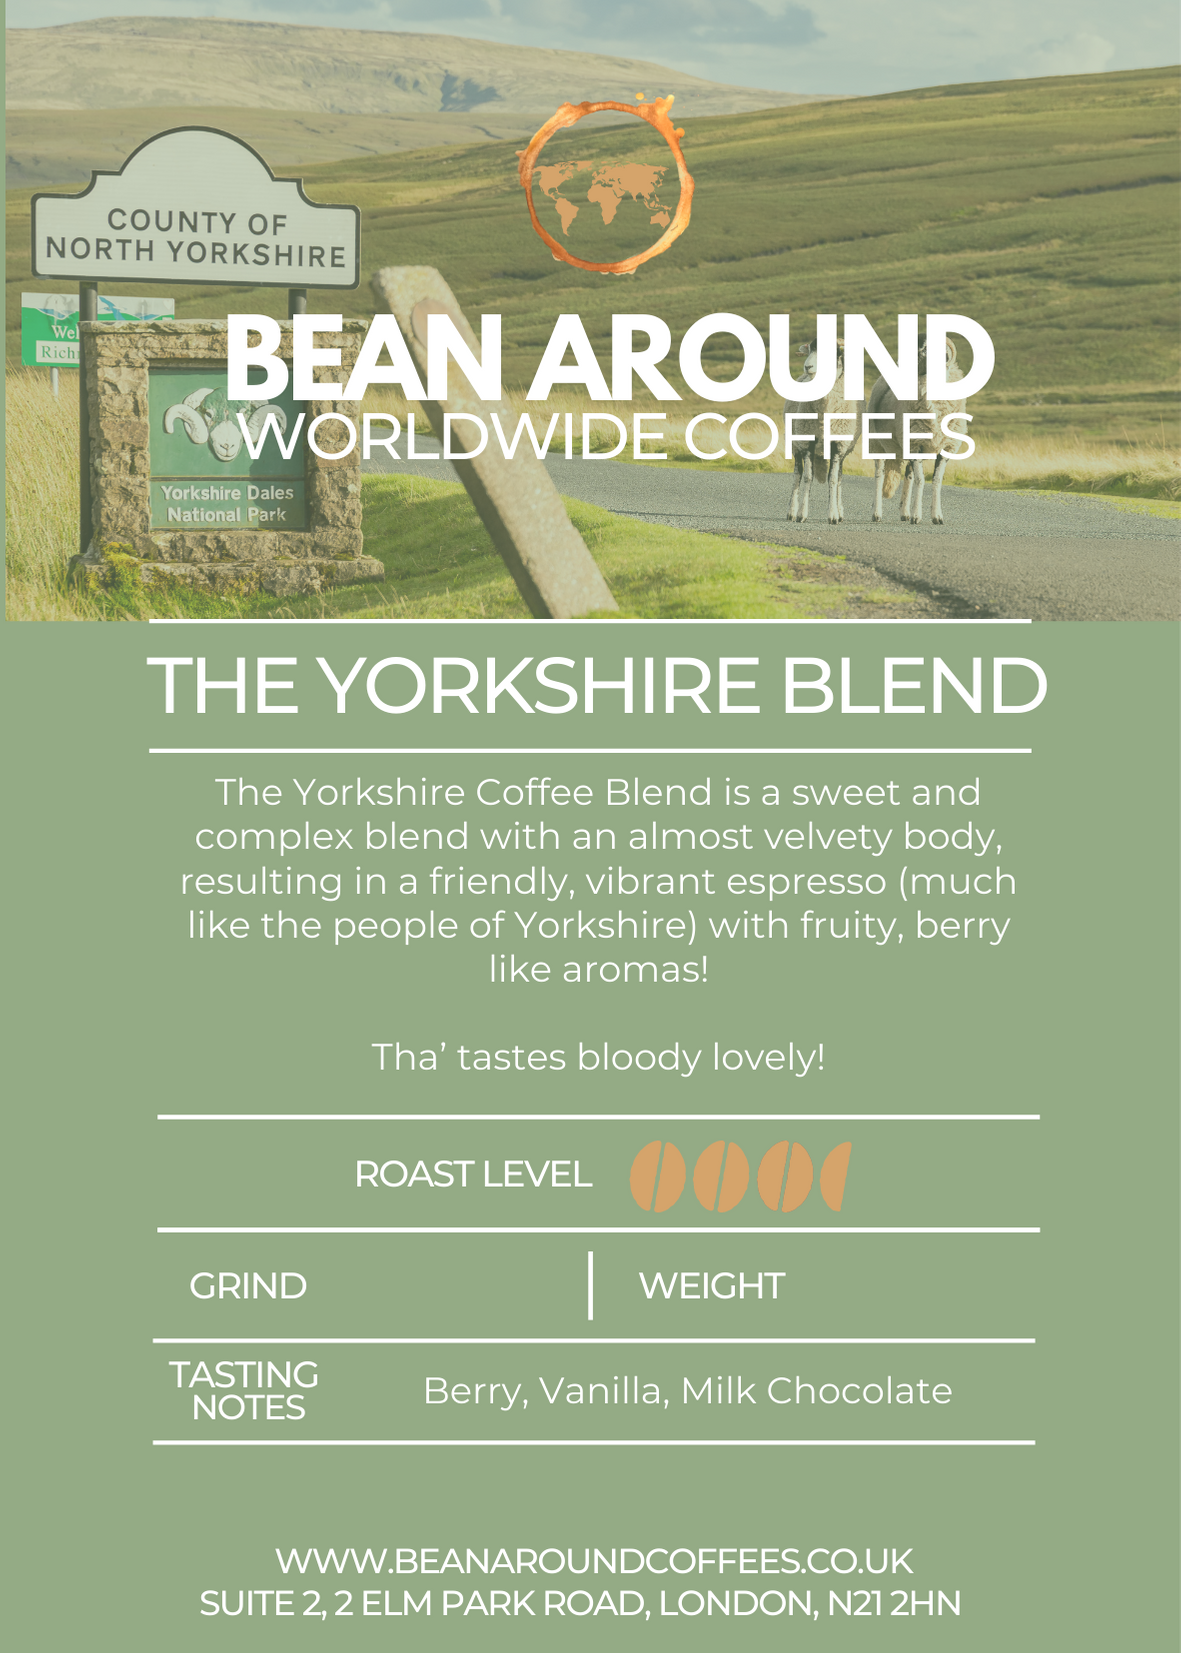 The Yorkshire Coffee Blend